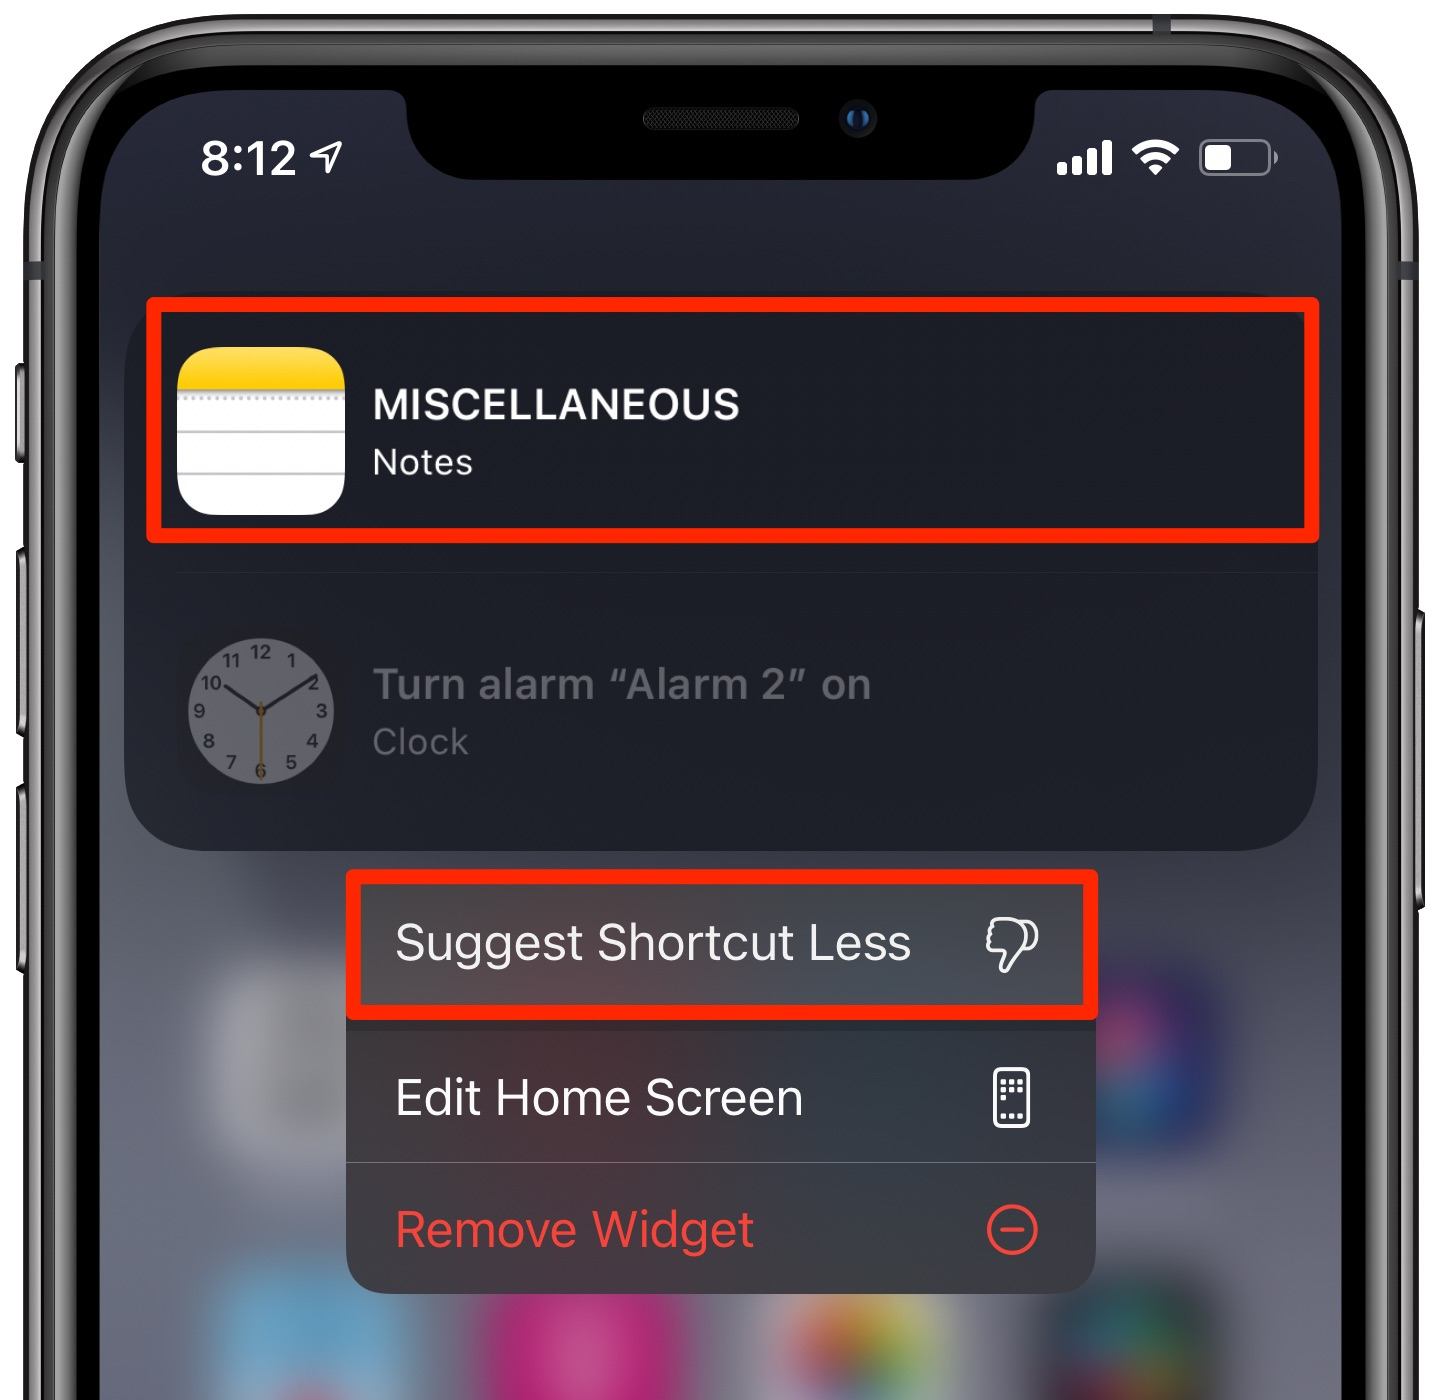 Suggesting the Notes shortcuts less on the Home screen